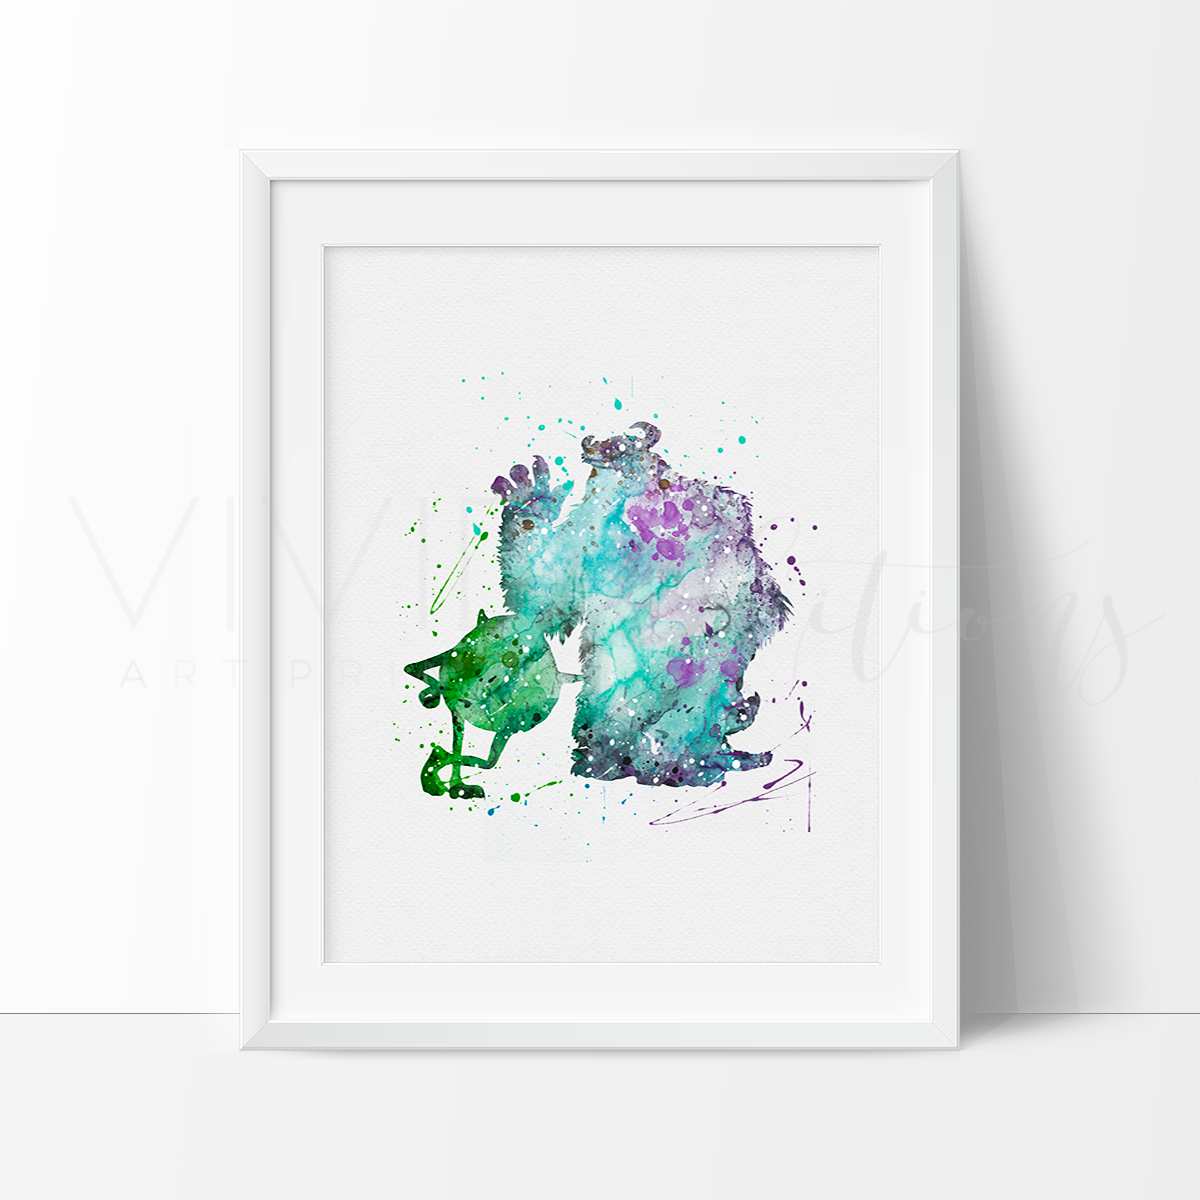 Mike & Sulley 2 Watercolor Art Print Art Print - VIVIDEDITIONS